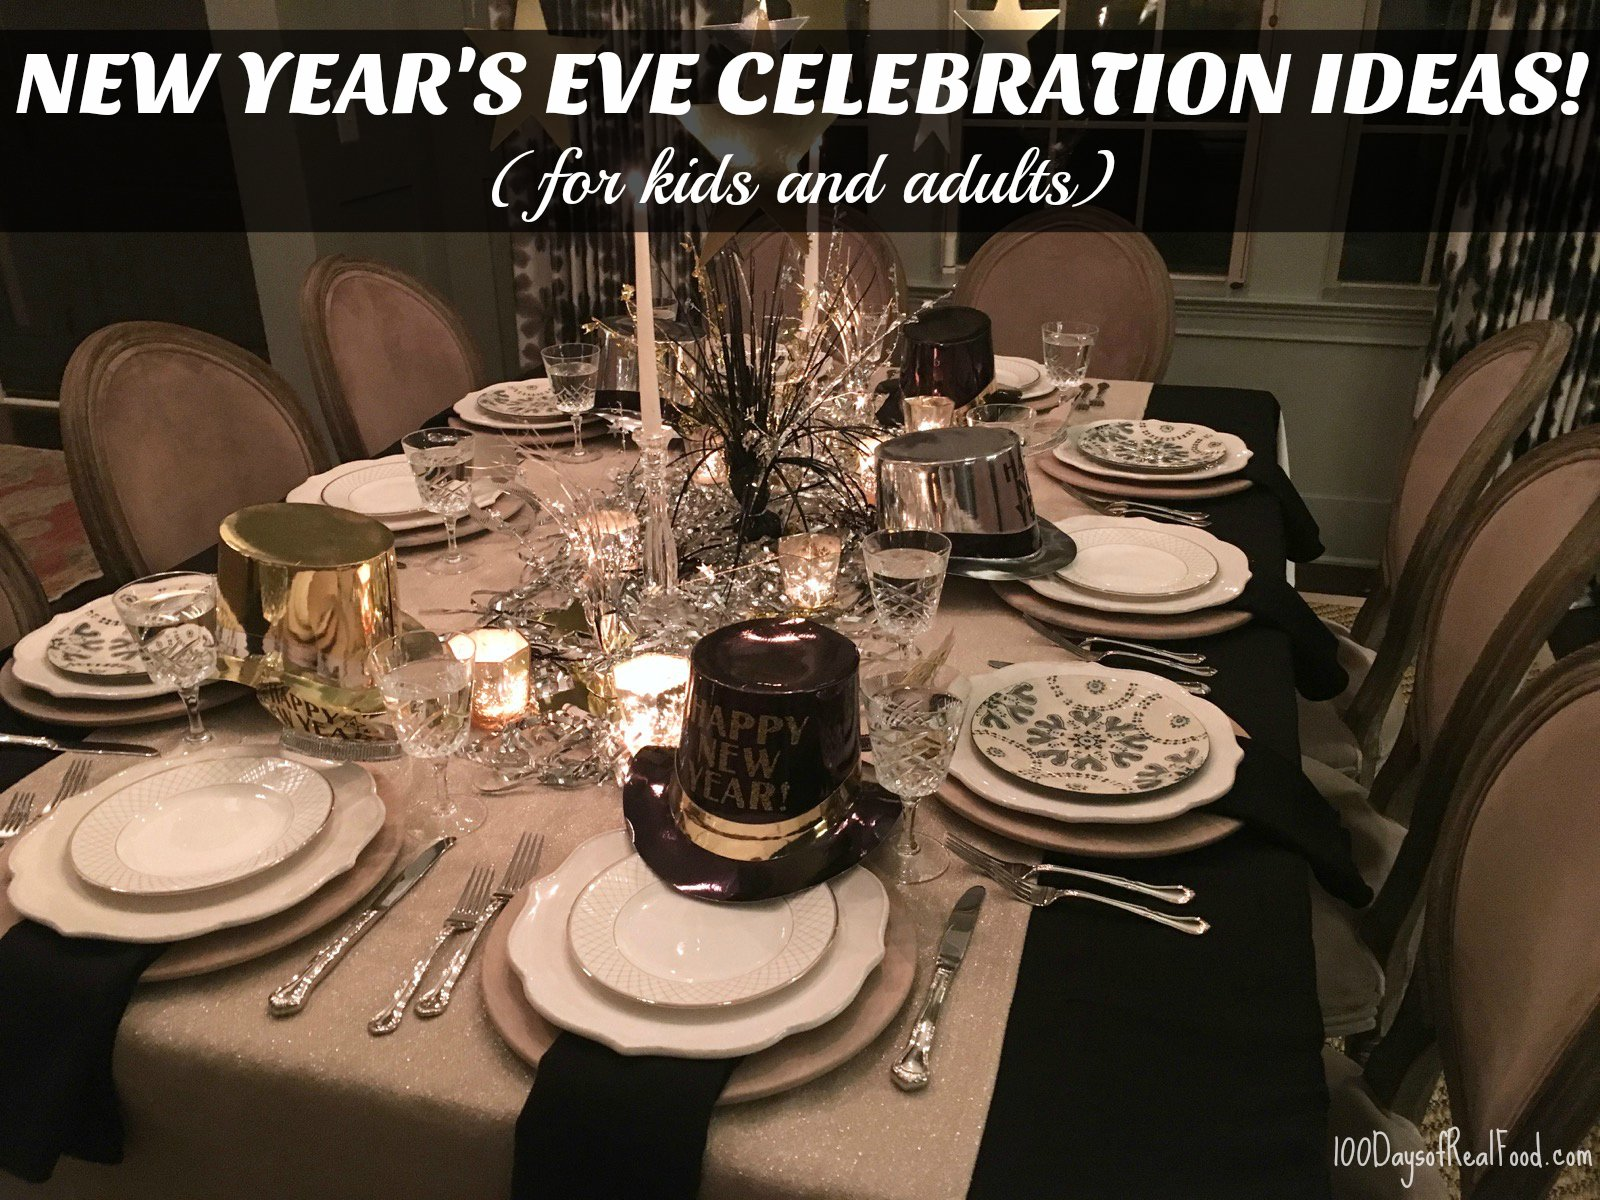 Fun Ways to Celebrate New Year's Eve - 100 Days of Real Food